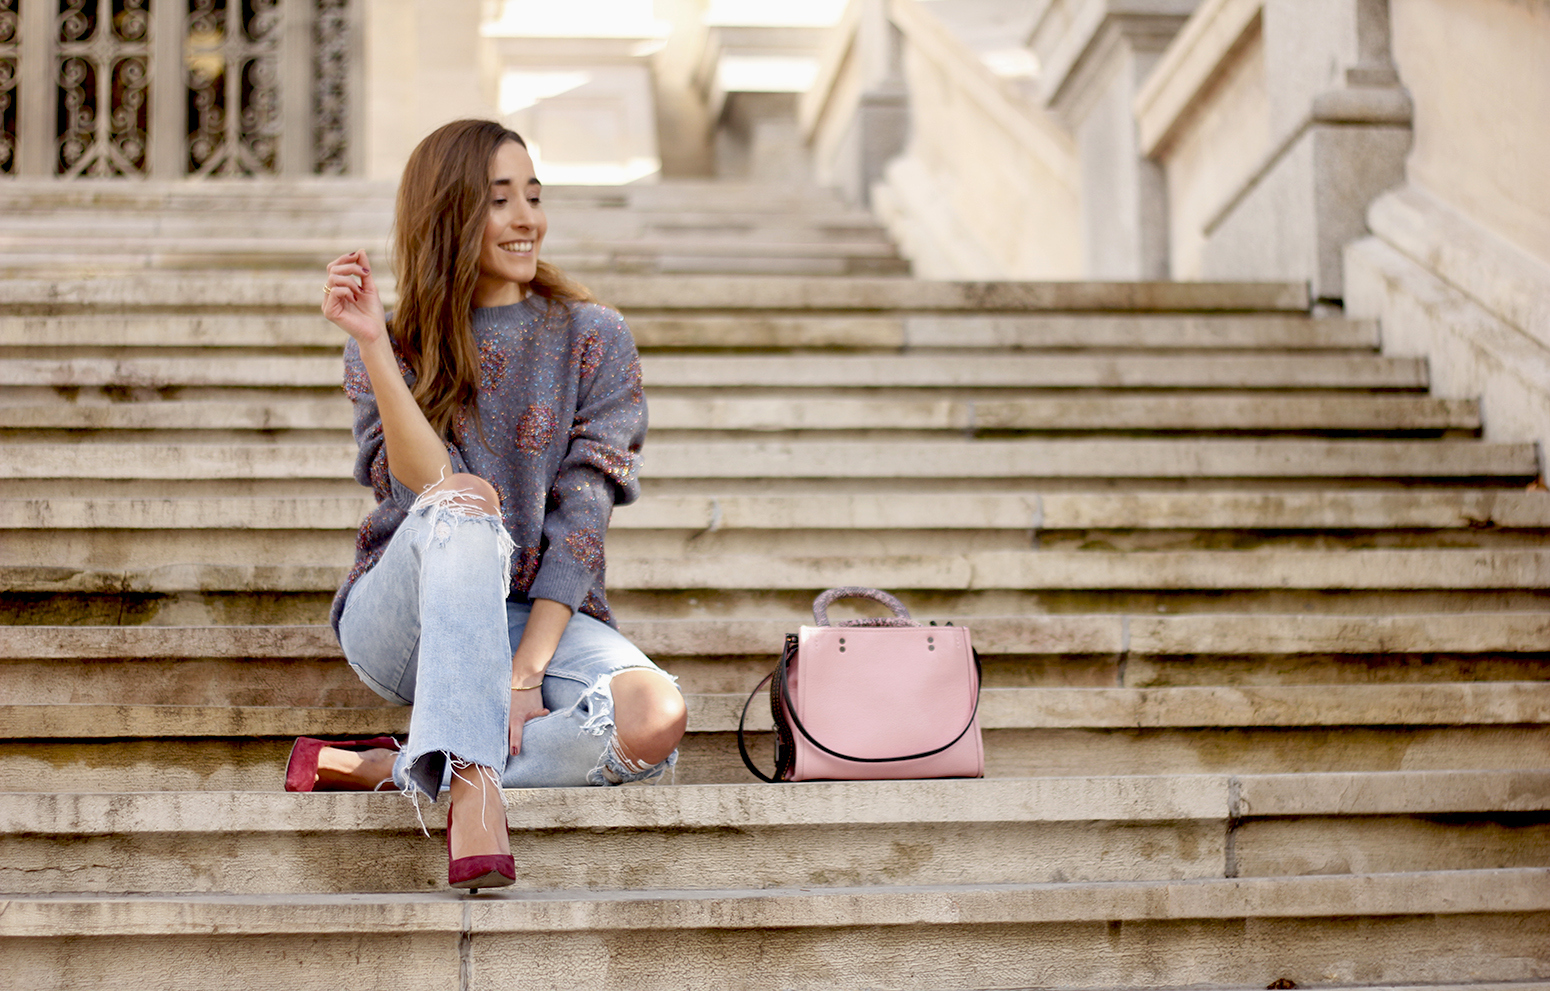 GRAY CHRISTMAS JERSEY ripped jeans pink coaach bag burgundy heels street style fall outfit 20187035